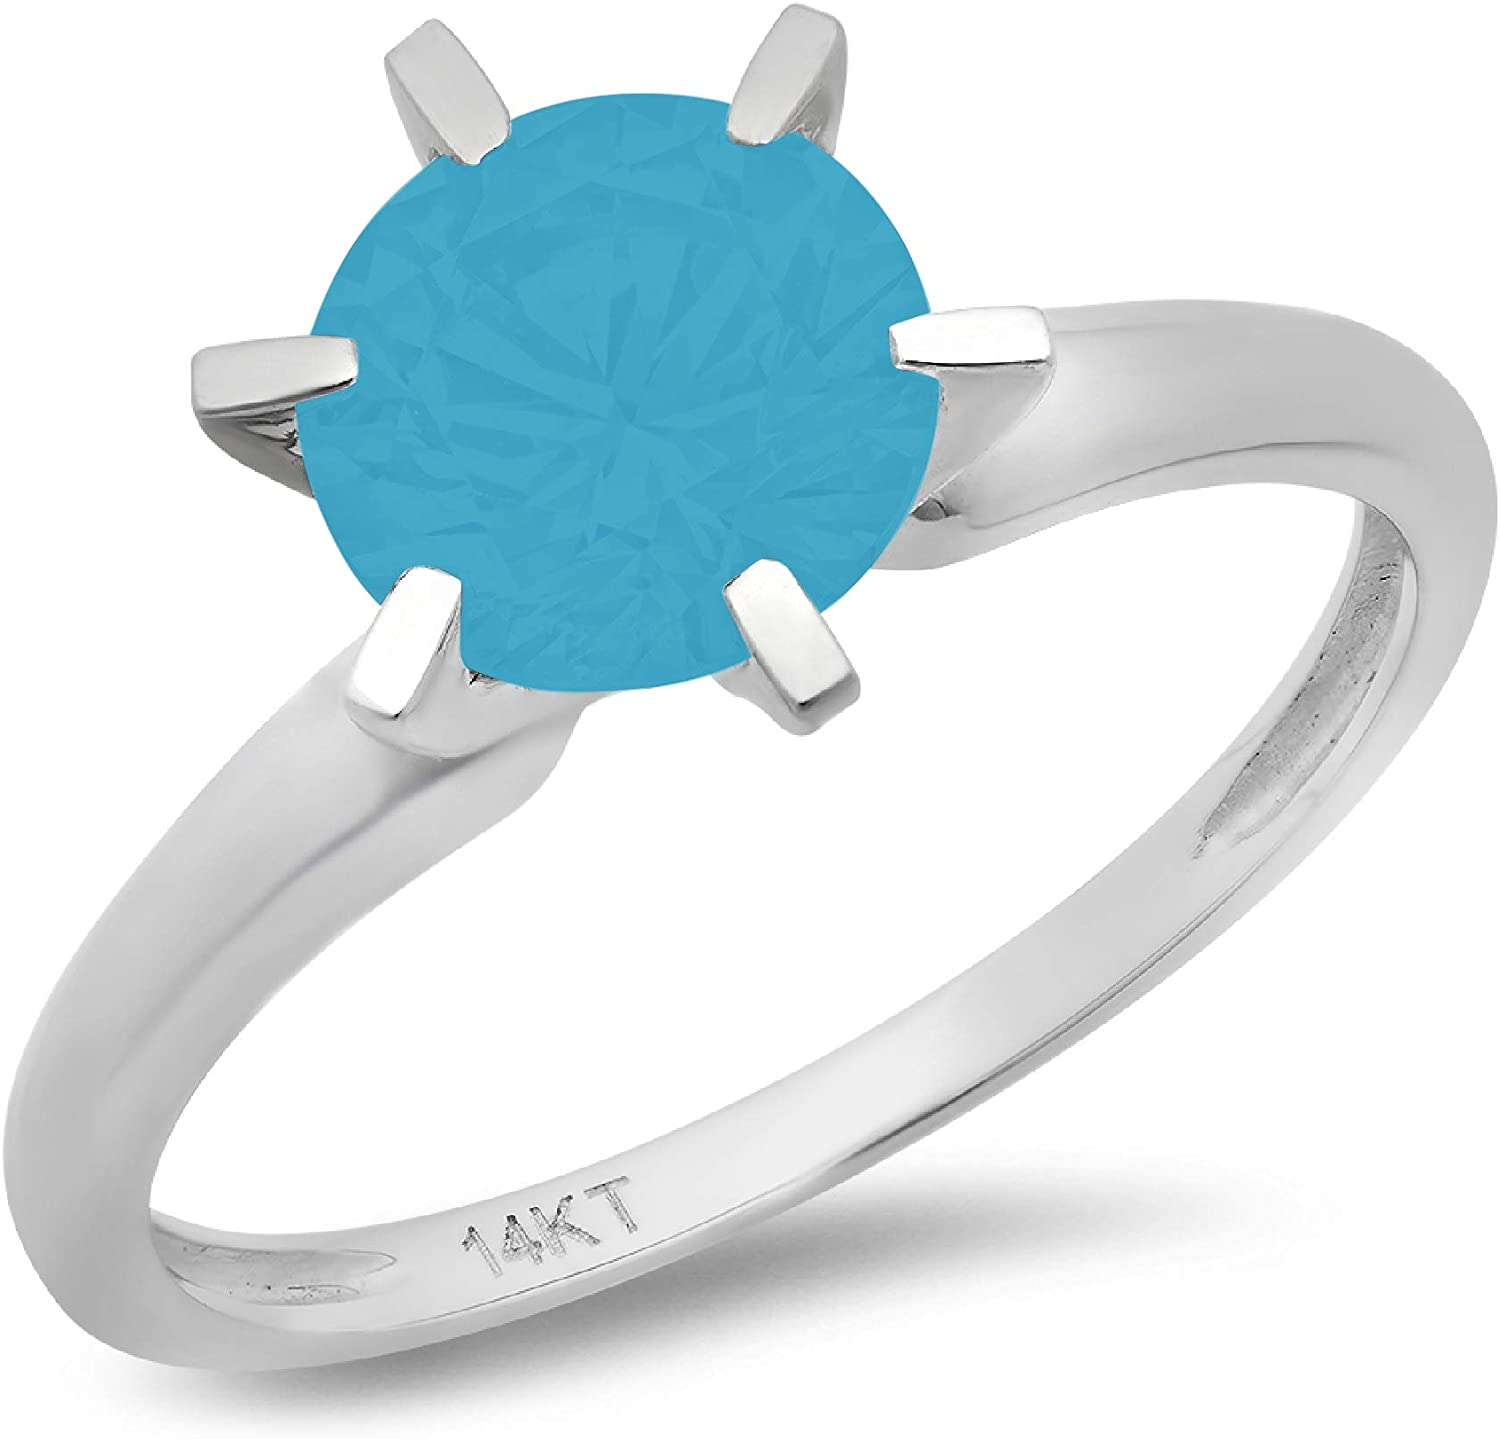 0.9ct Brilliant Round Cut Solitaire Flawless Simulated Cubic Zirconia Blue Turquoise Ideal 6-Prong Engagement Wedding Bridal Promise Anniversary Designer Ring in Solid 14k white Gold for Women